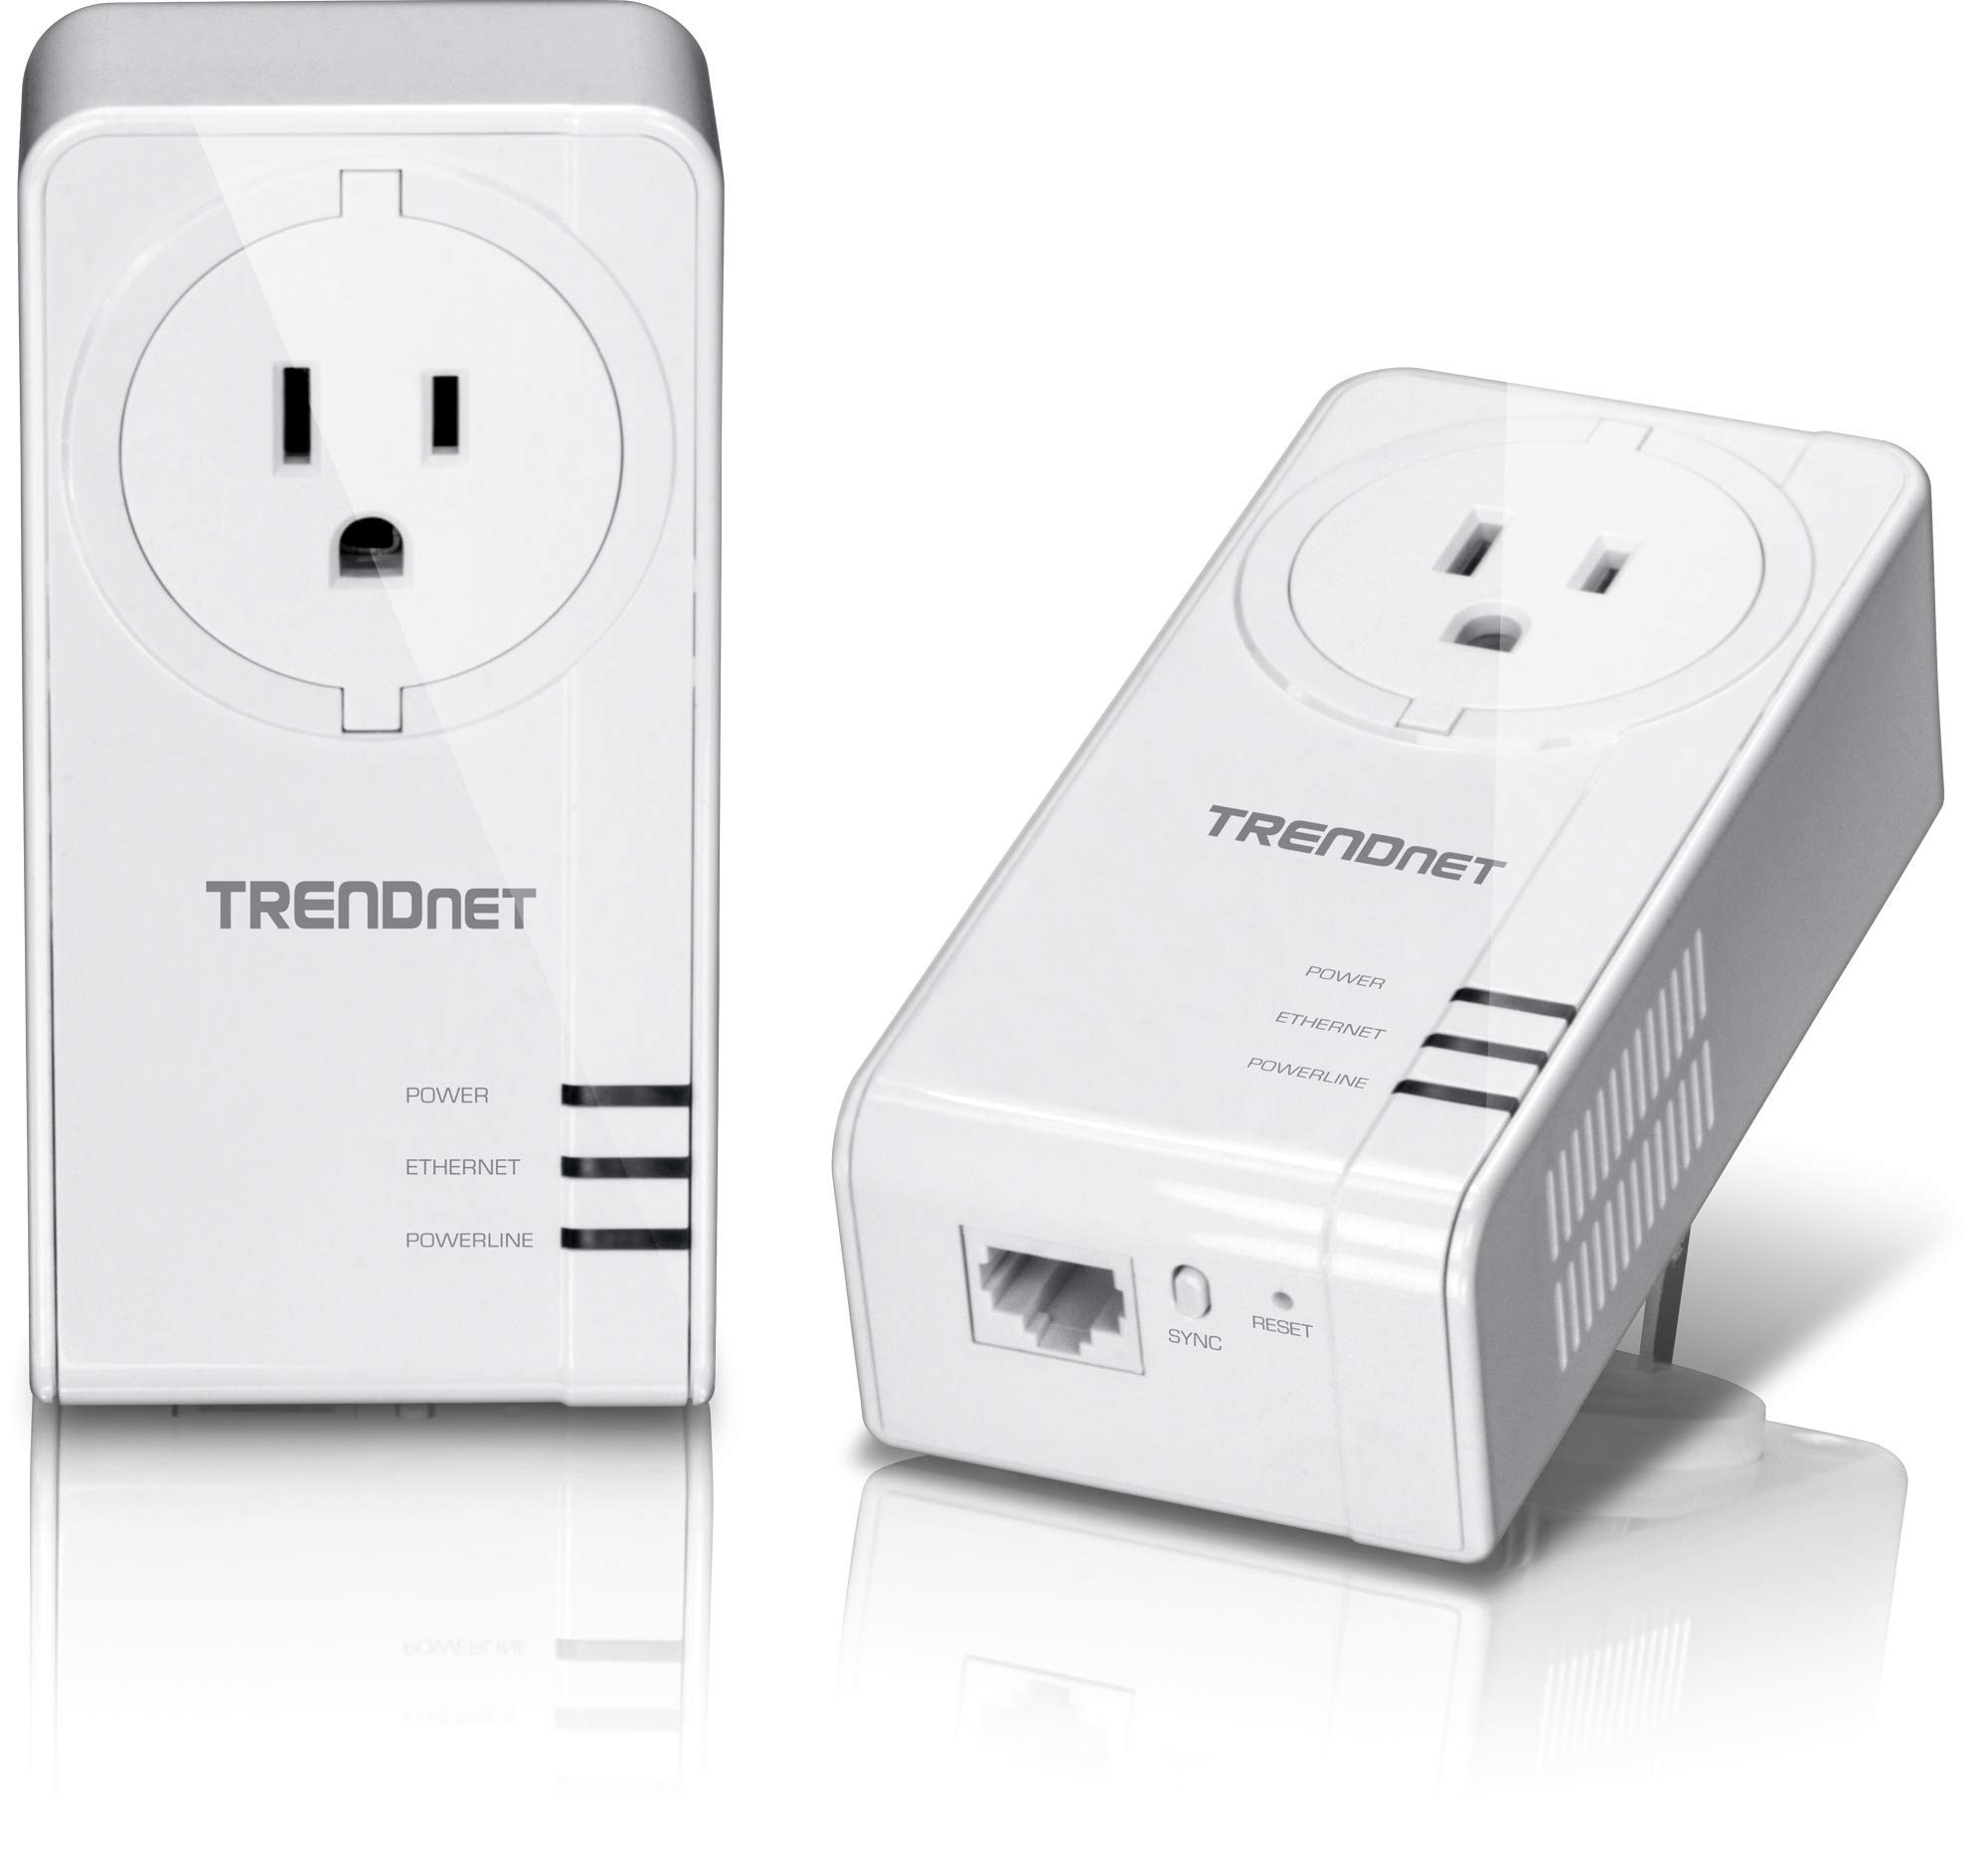 TRENDnet Powerline 1300 AV2 Adapter with Built-in Outlet Adapter Kit, Includes 2 x TPL-423E Adapters, IEEE 1905.1 & IEEE 1901, Gigabit Port, Range Up to 300m (984 ft.), TPL-423E2K by TRENDnet